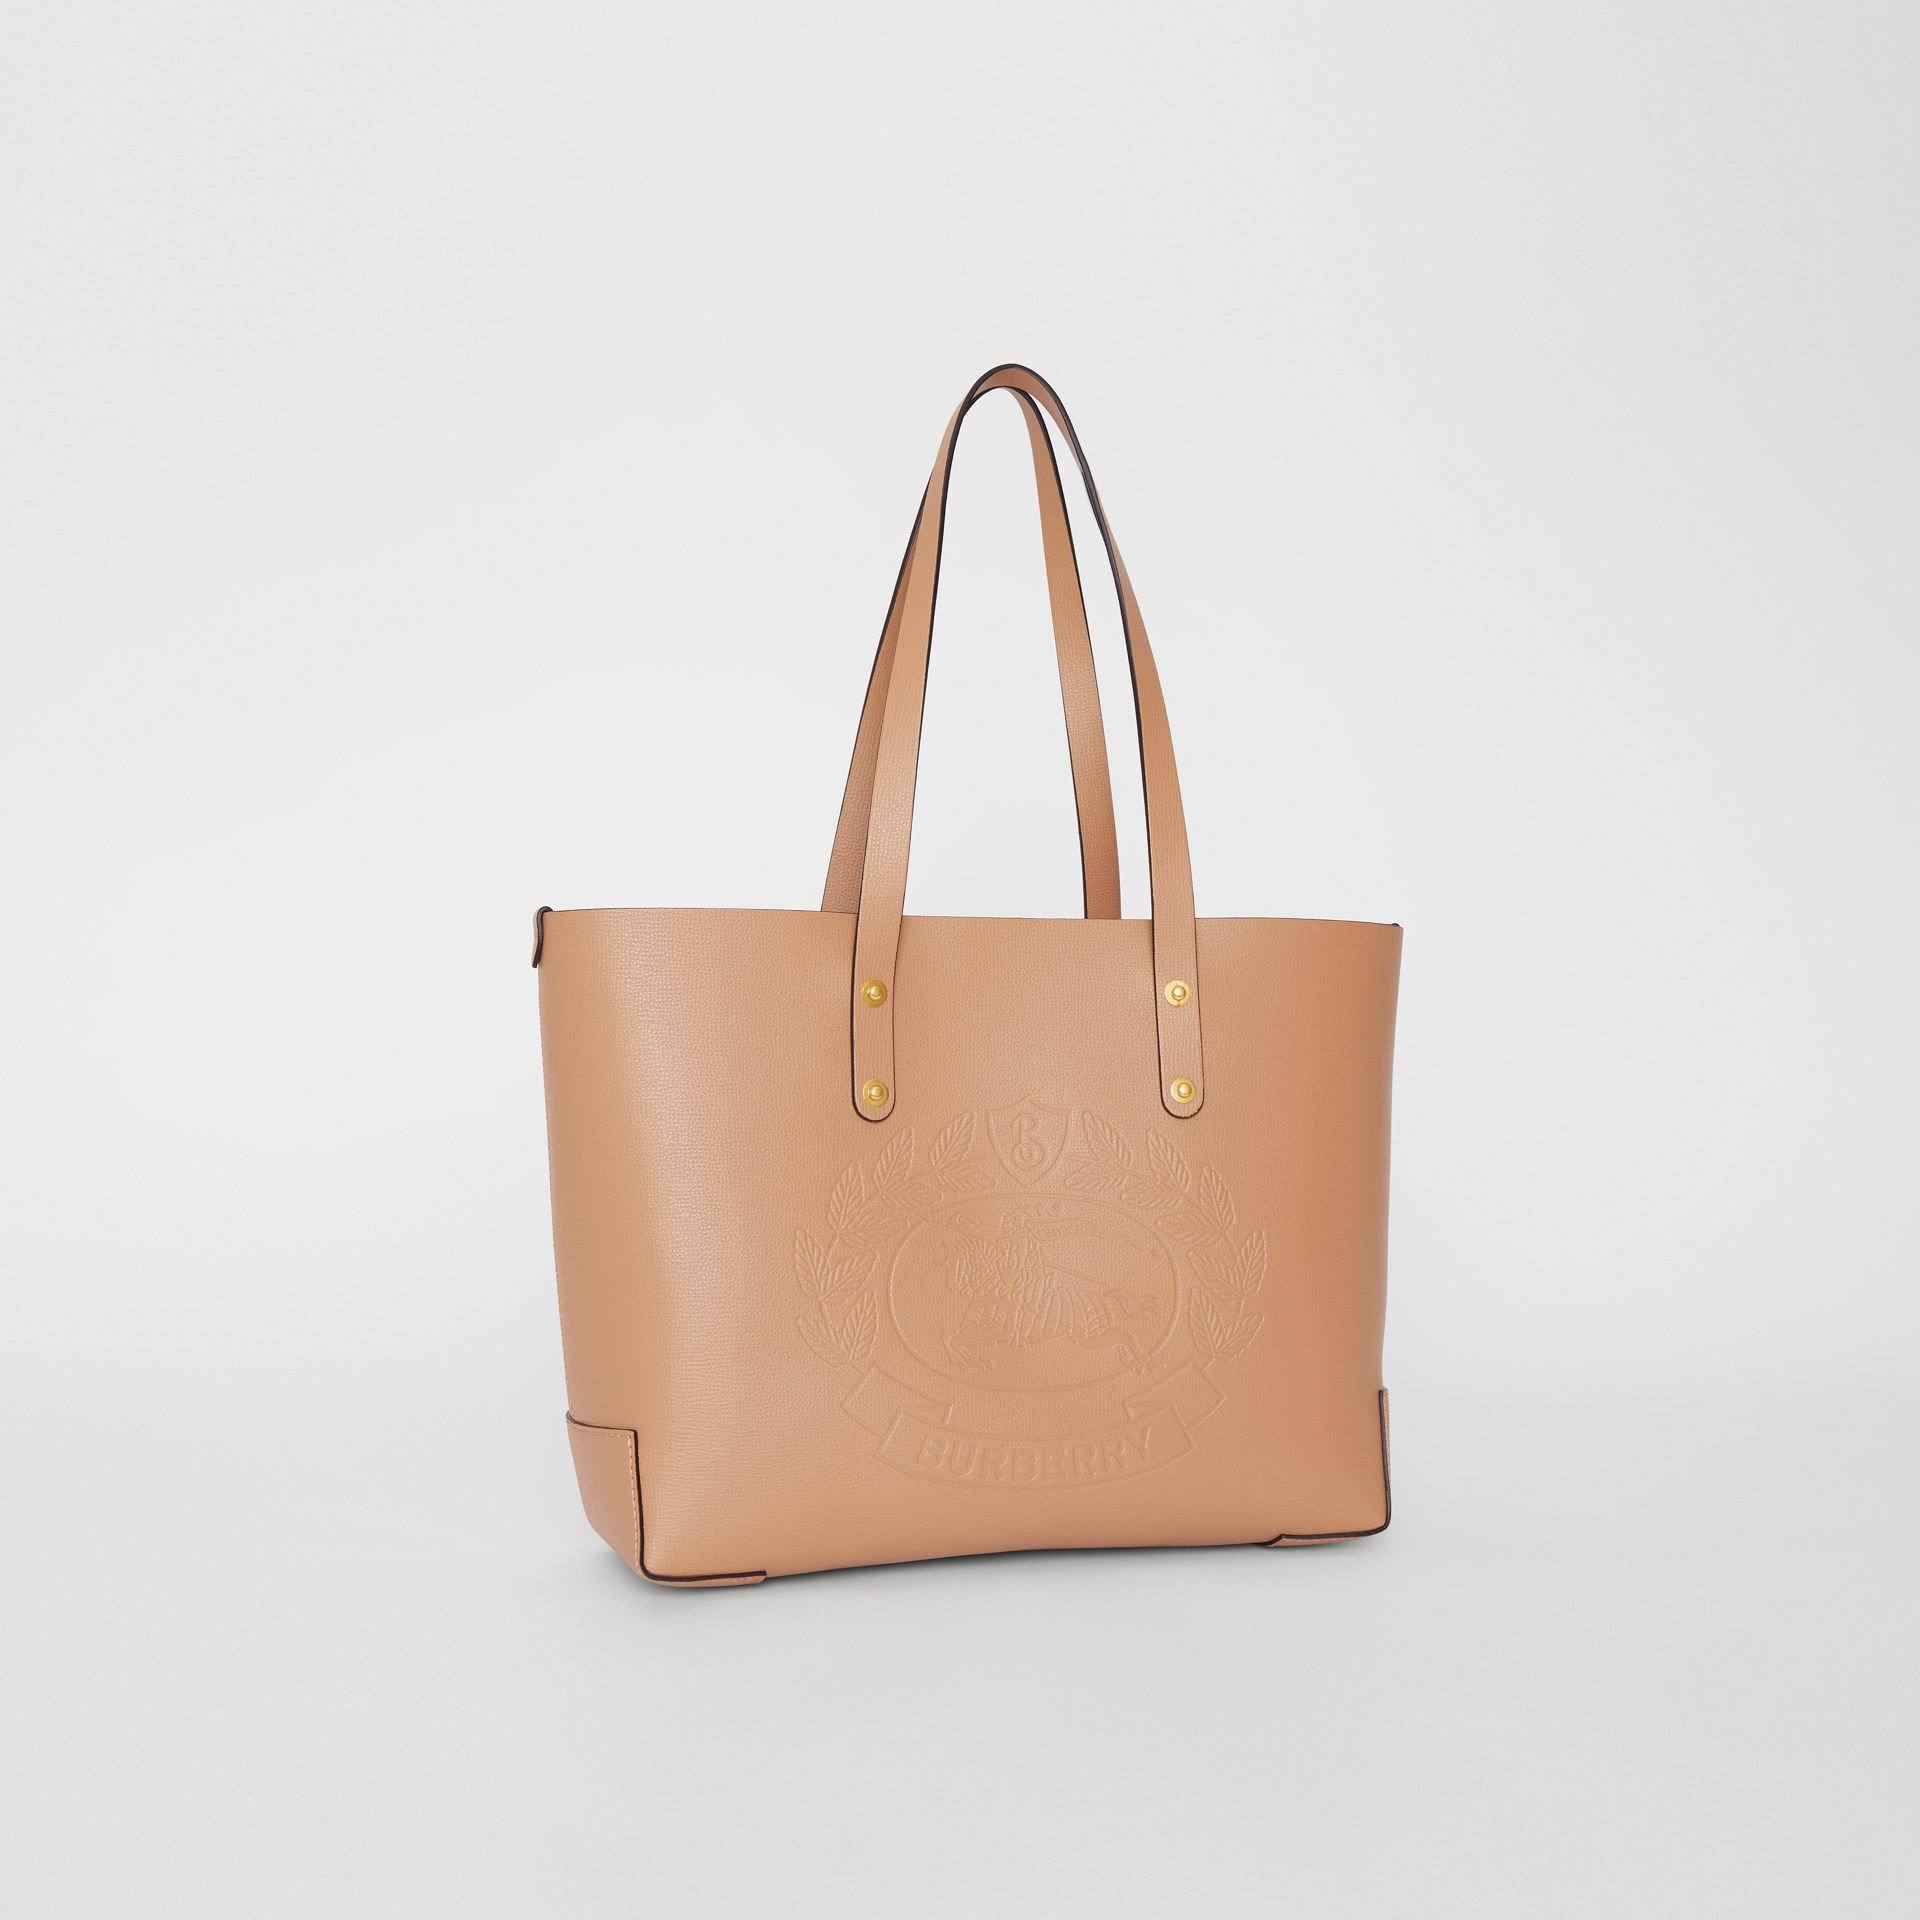 Small Embossed Crest Leather Tote in Light Camel - Women | Burberry - gallery image 6